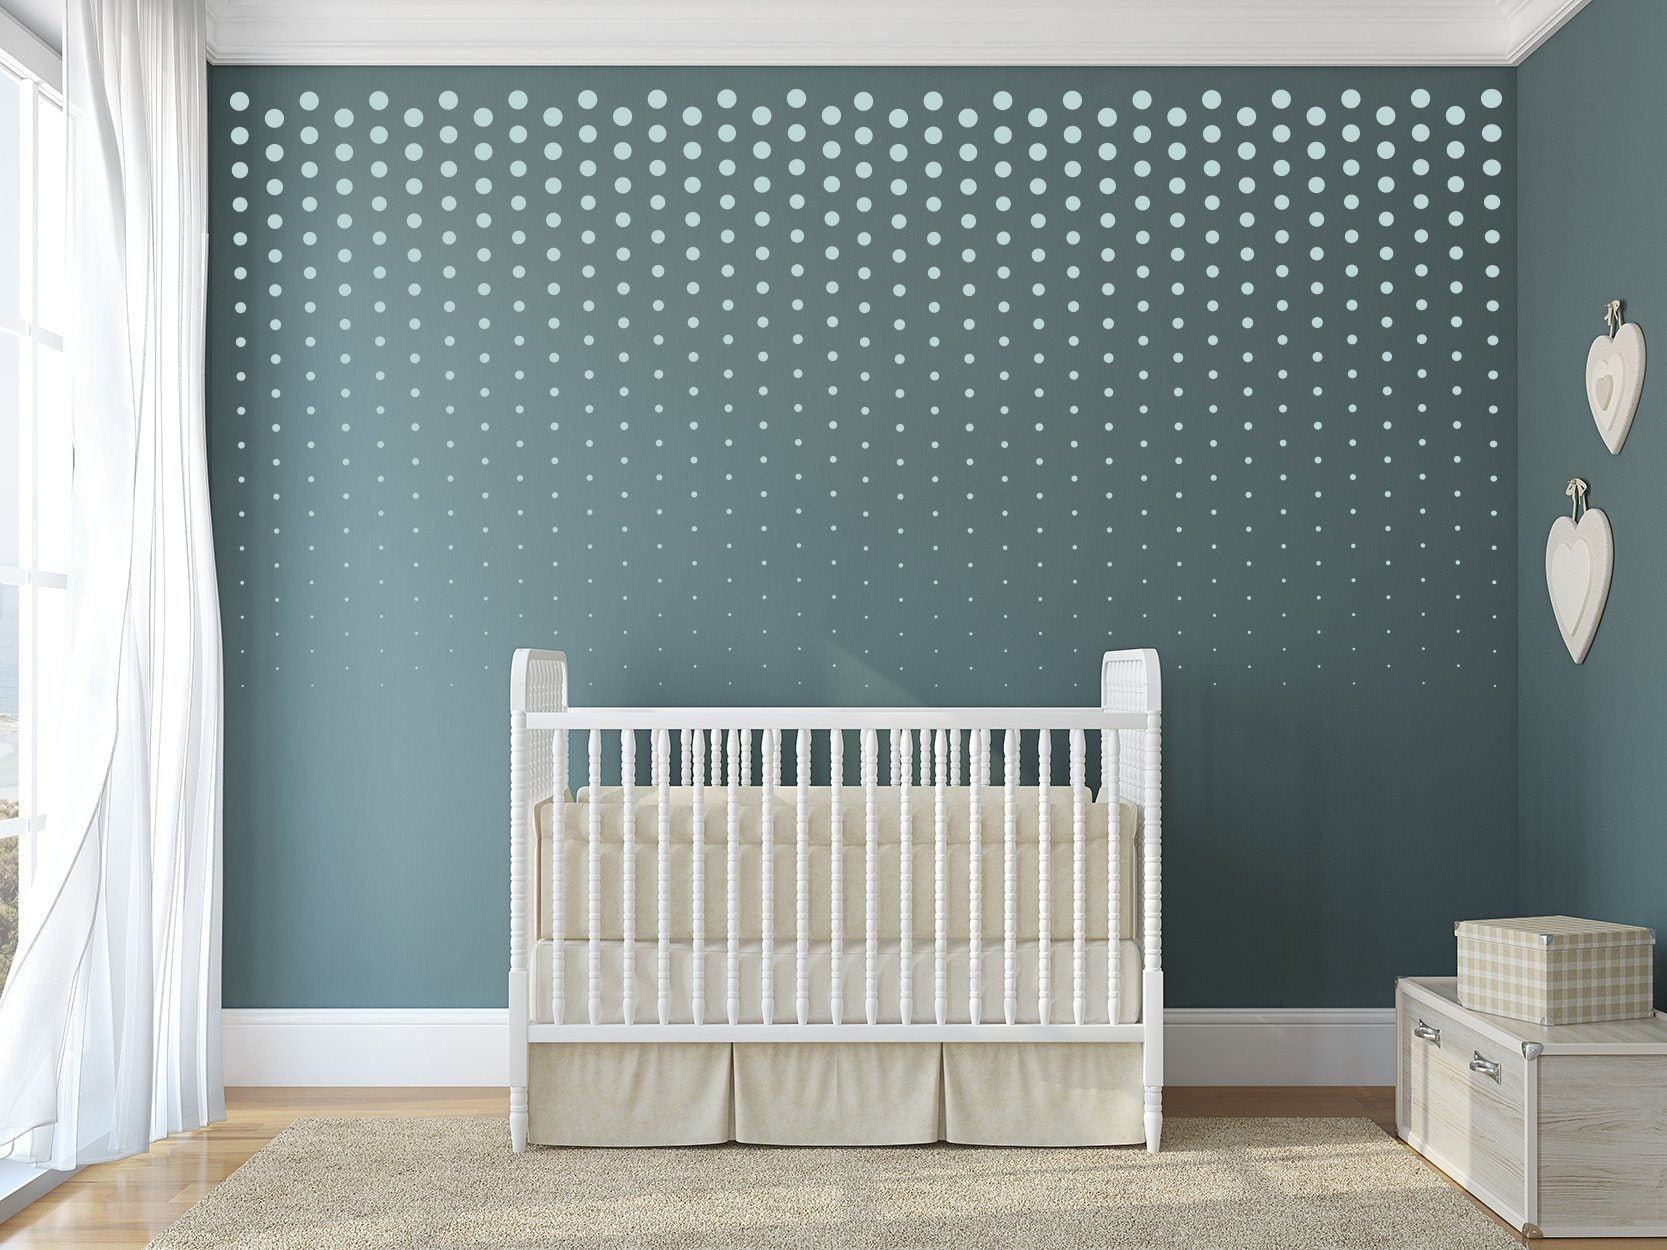 Fading Polka Dot Baby Nursery Wall Art - Vinyl Wall Decals For Nurseries, Children's Rooms, And Home Decor